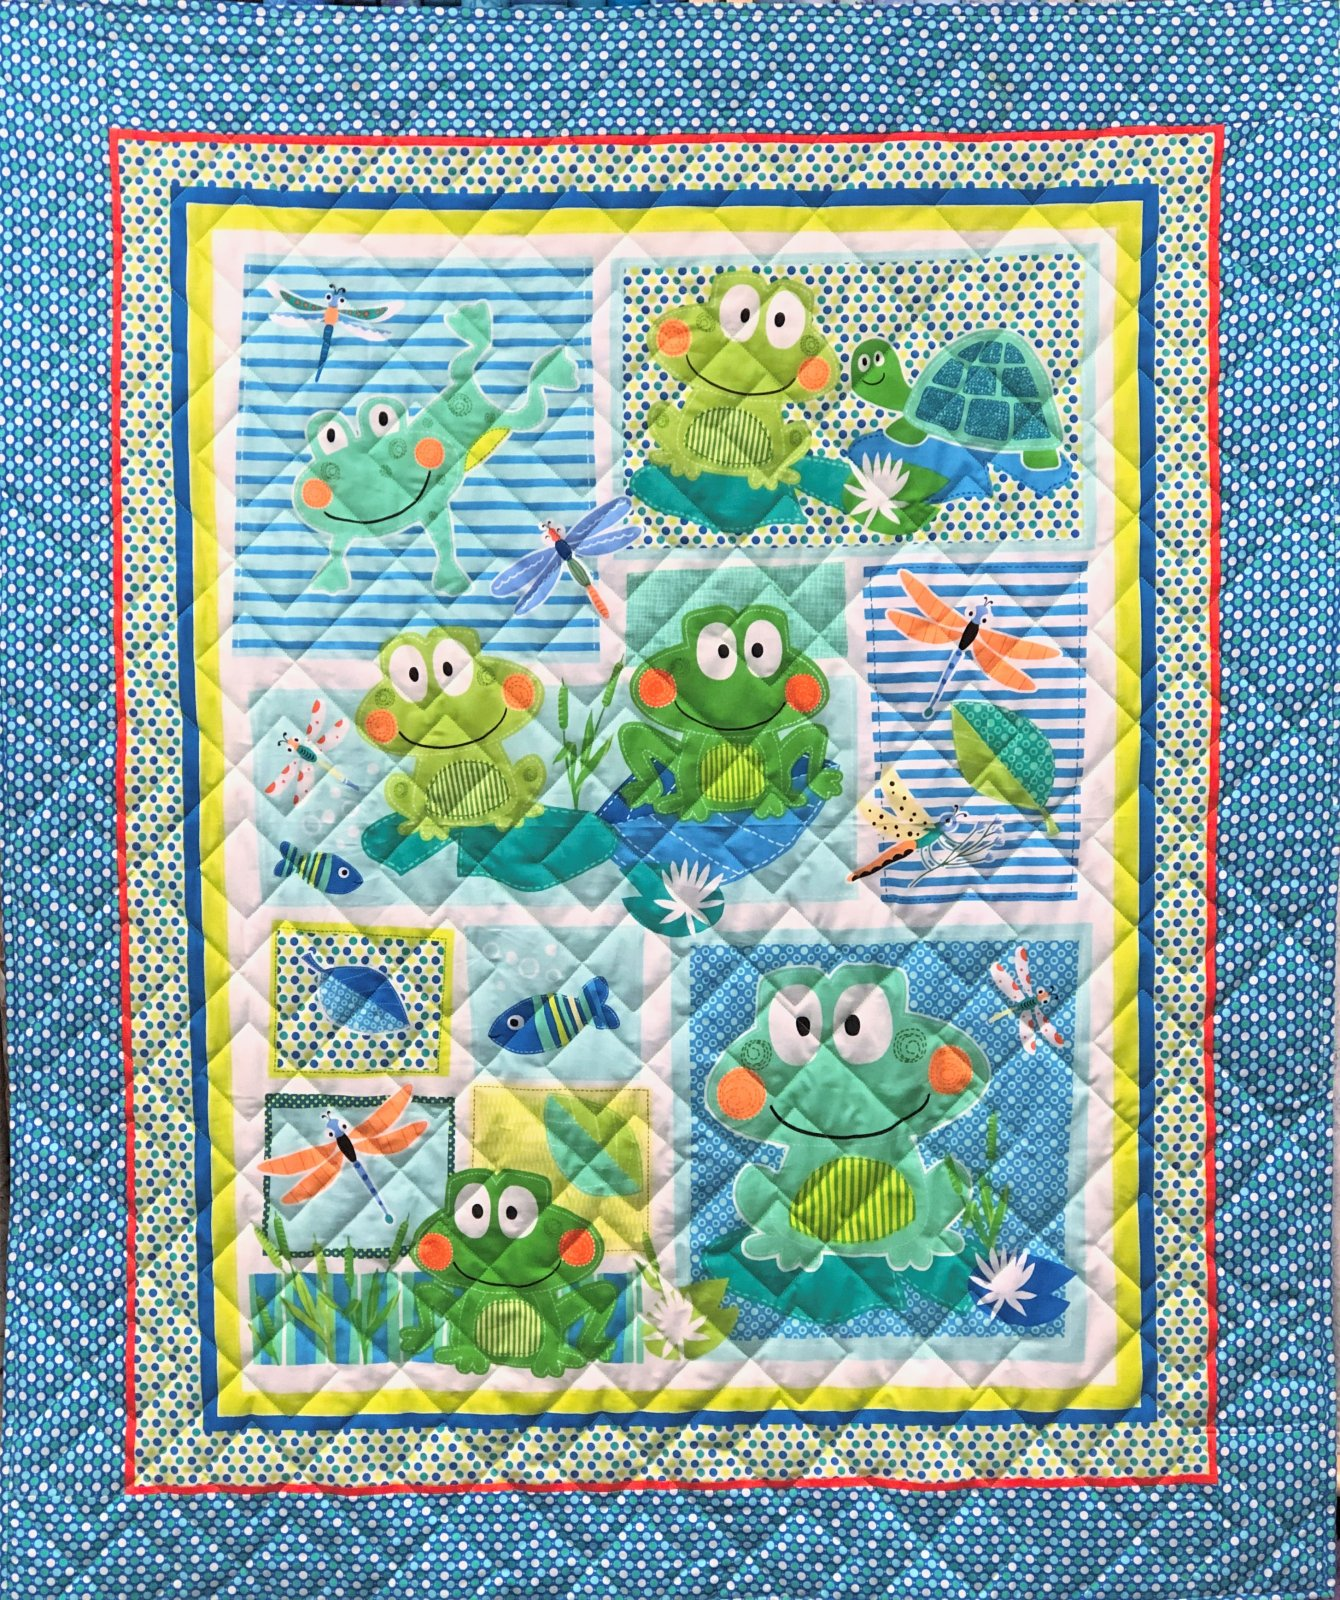 TOADILY CUTE PANEL QUILT KIT